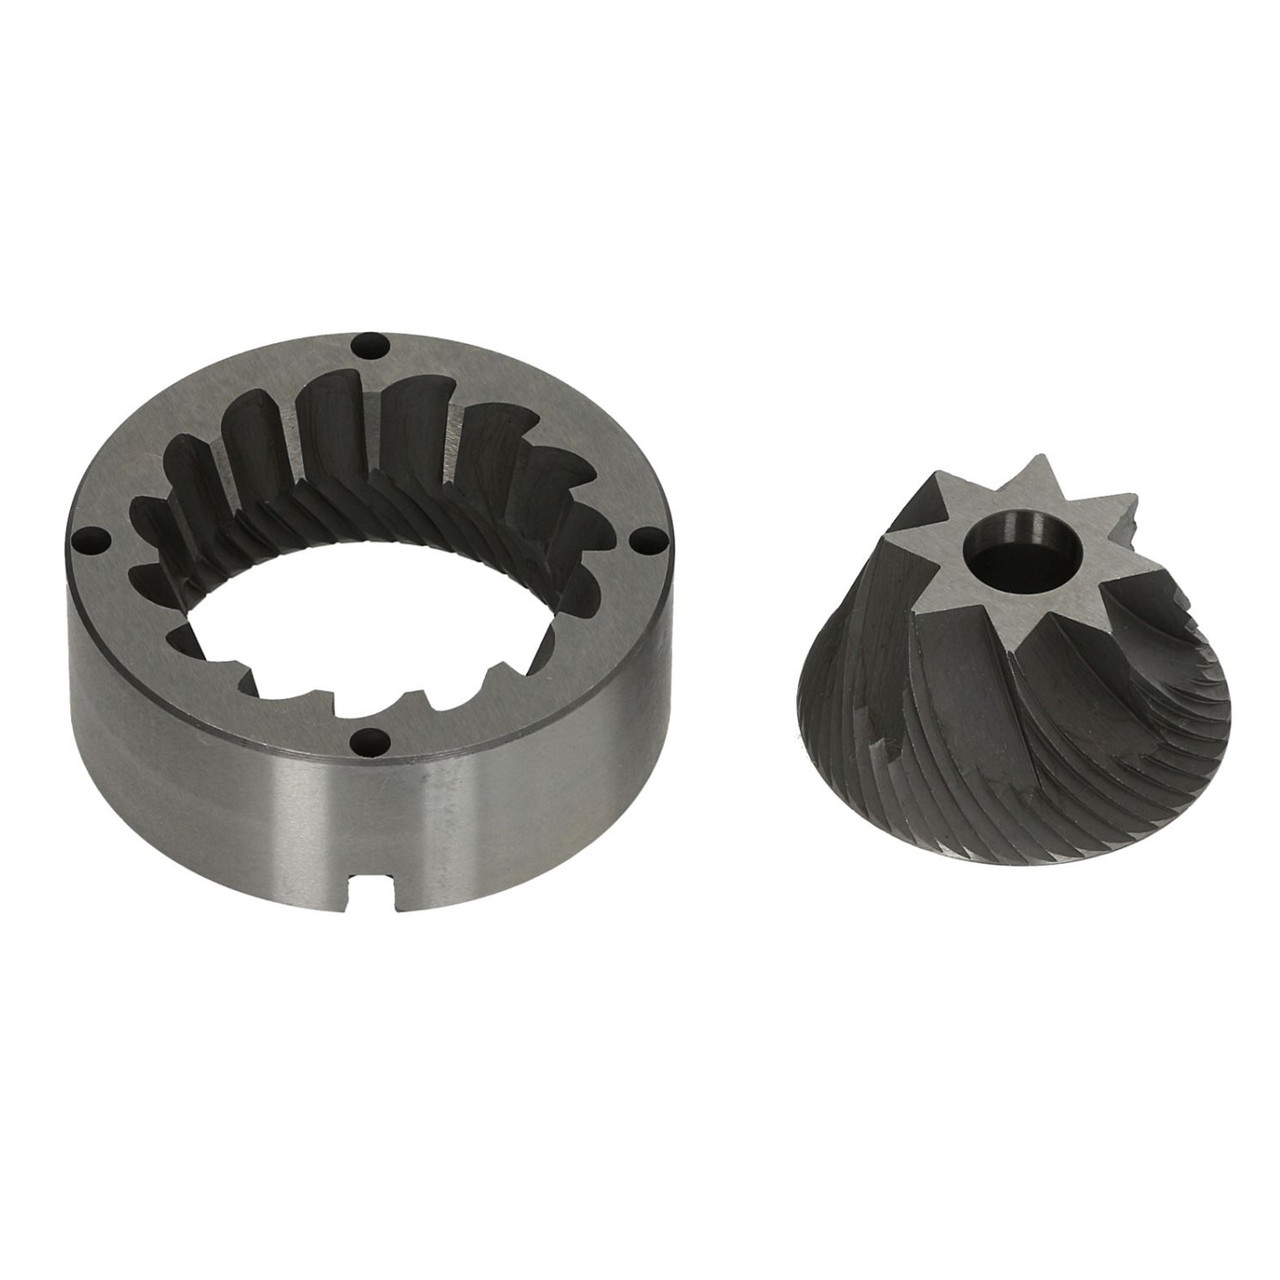 Coffee Grinder Blades / Burrs CONICAL 68mm - OUT